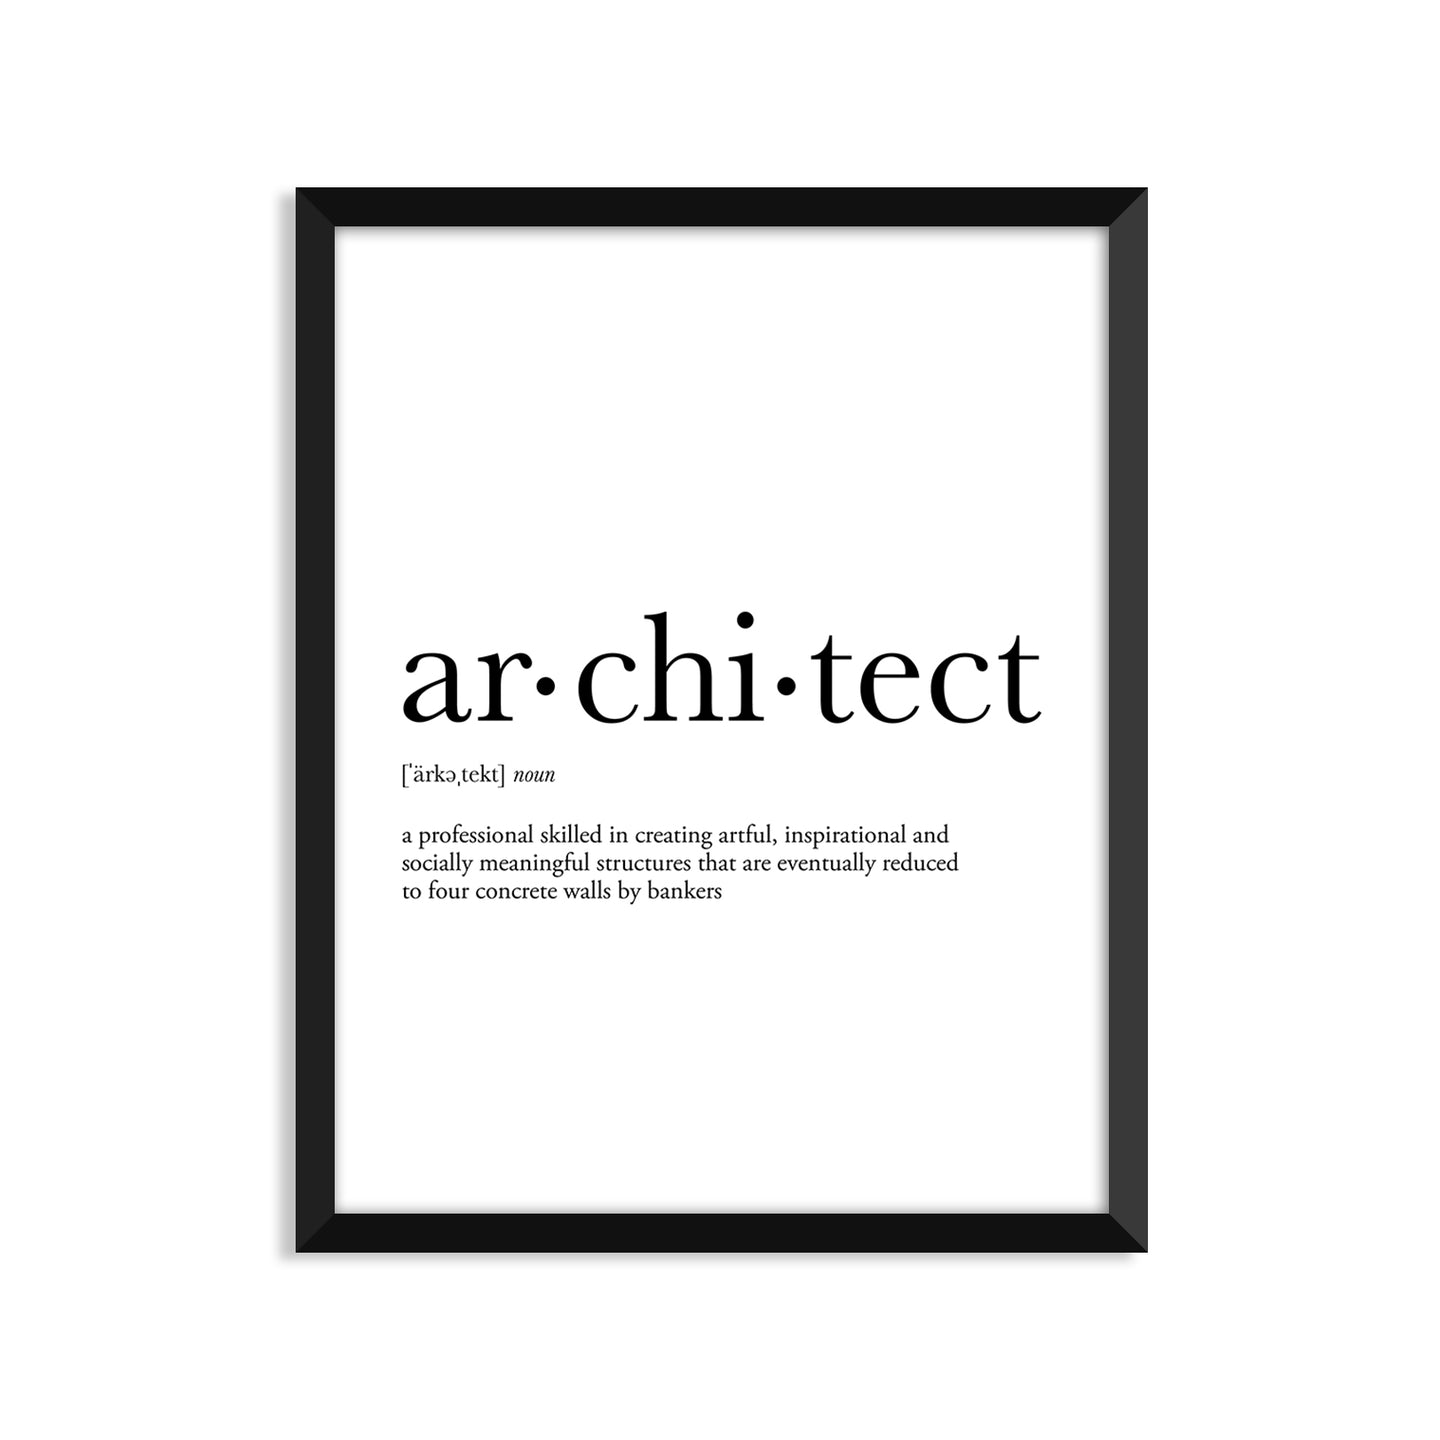 Architect Definition - Unframed Art Print Or Greeting Card